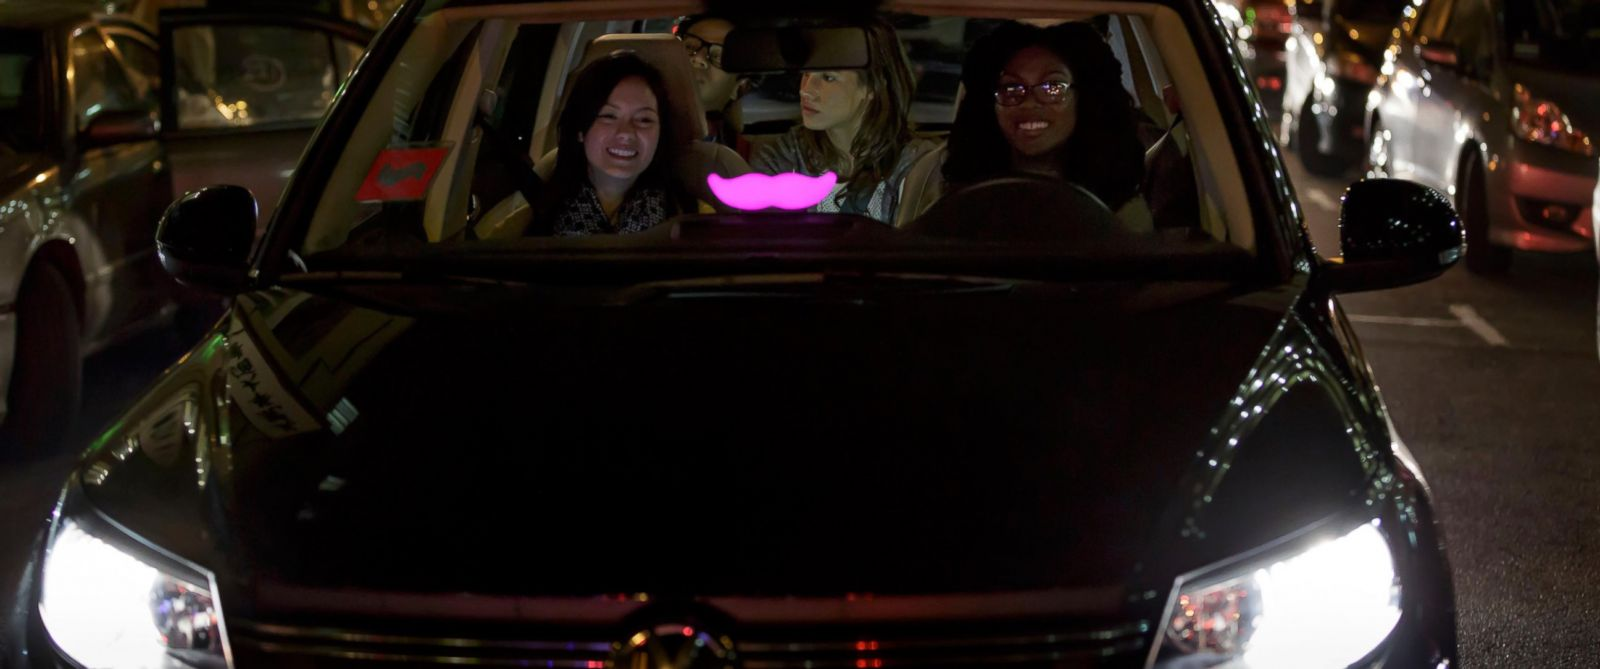 PHOTO:A Lyft car is seen in this undated file photo.